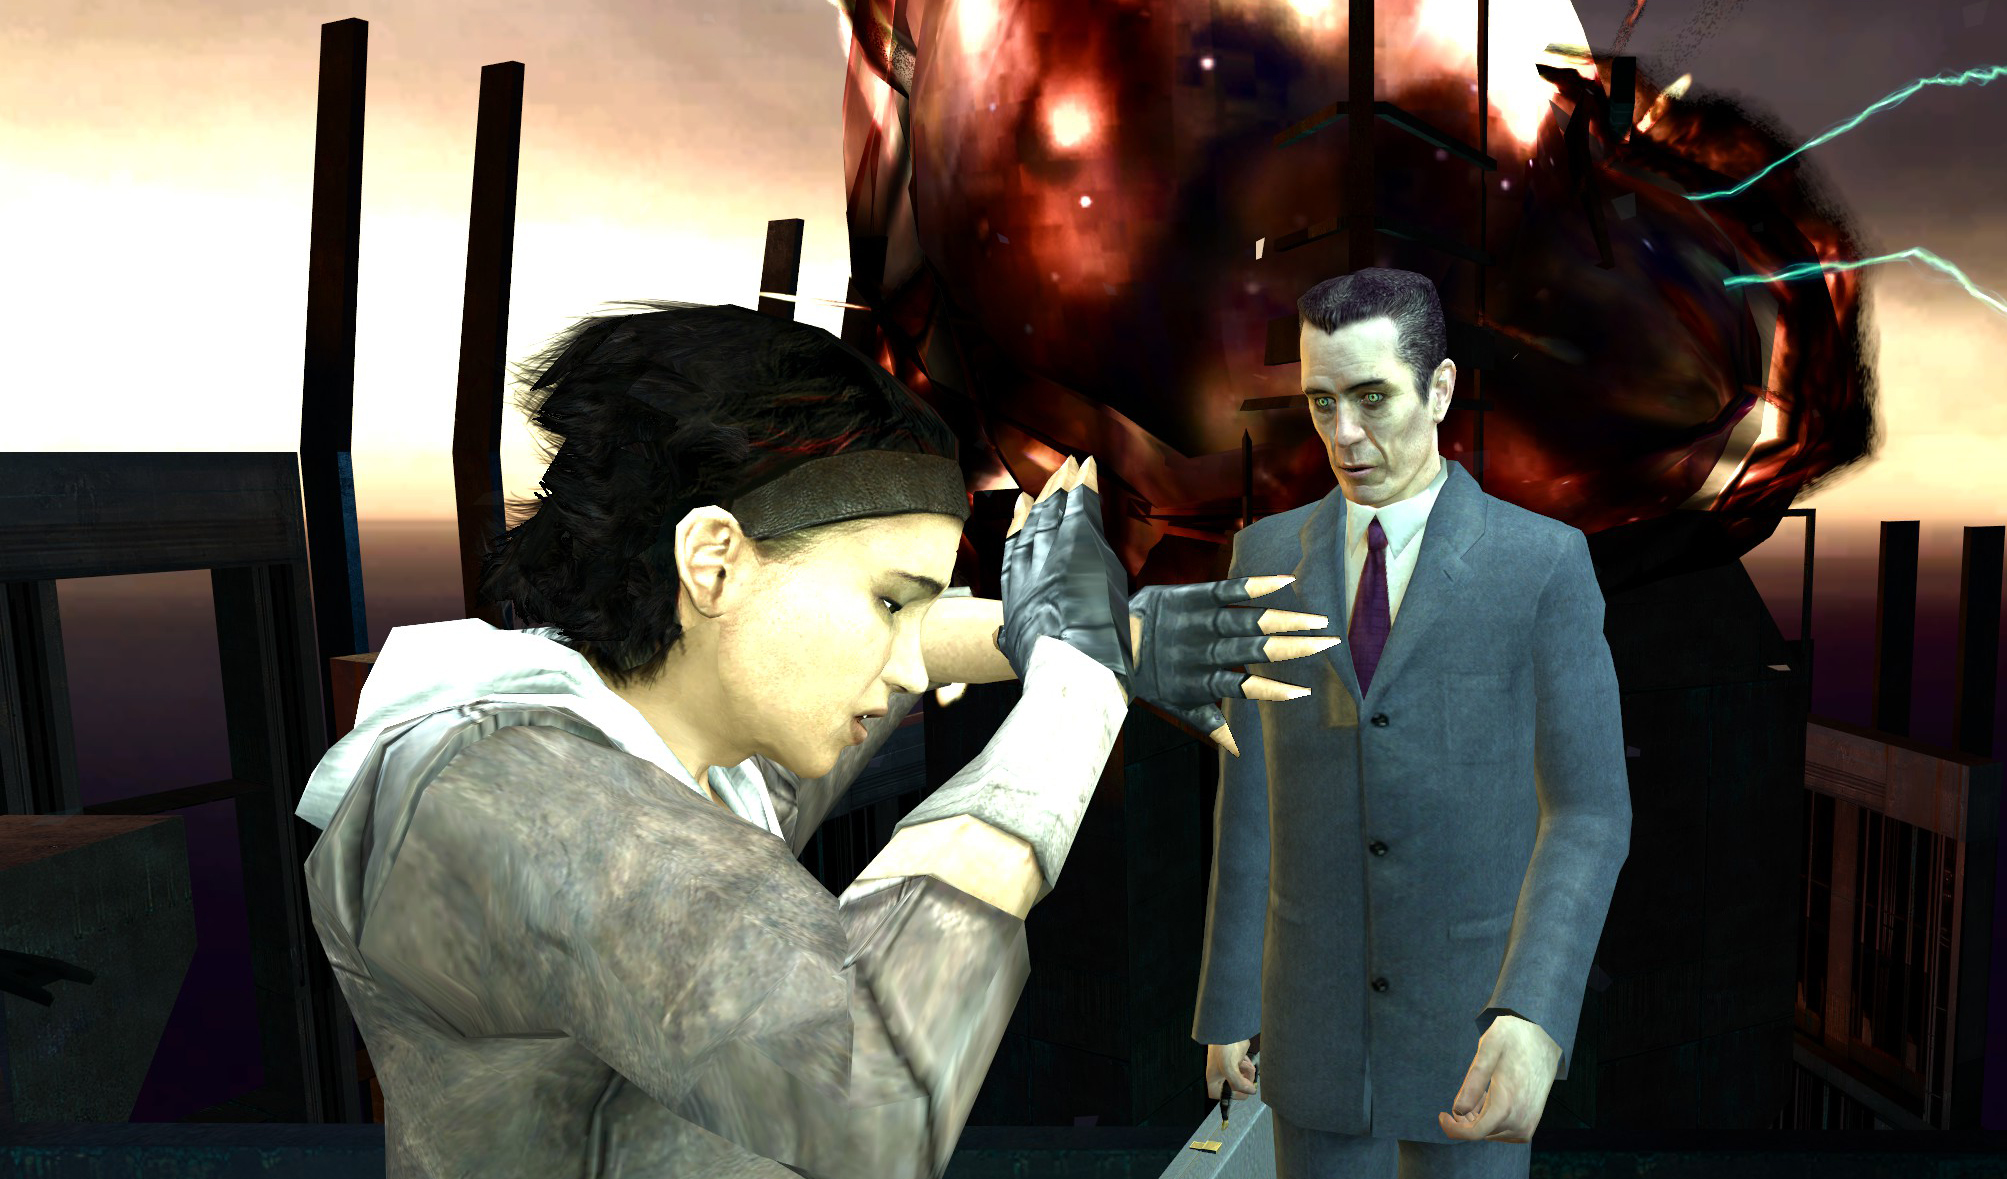 Why I played through Half-Life 2's final chapter 15 times in